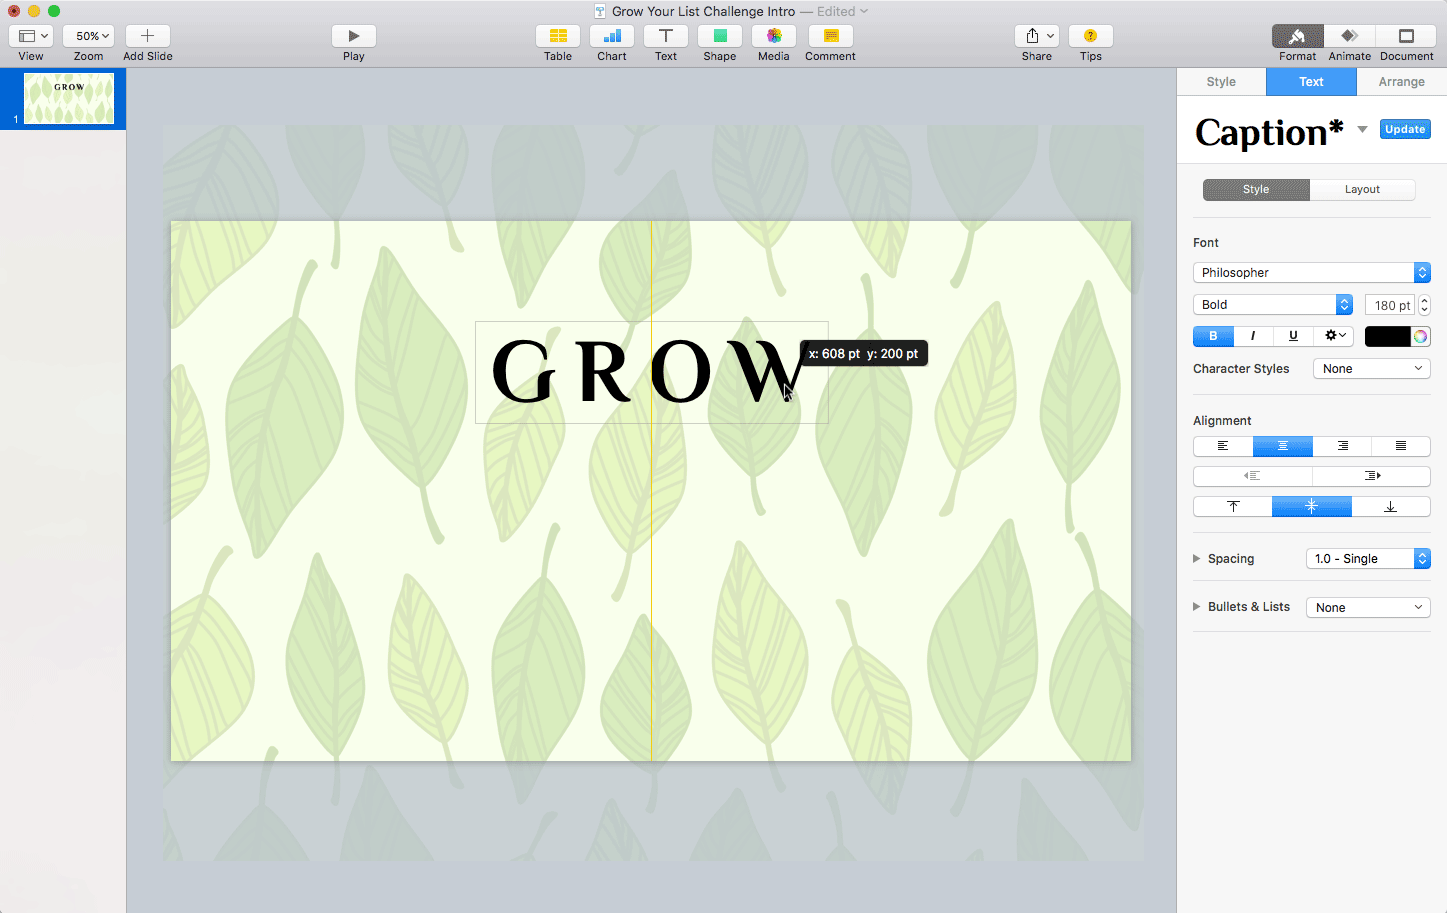 Keynote: Positioning the GROW text box